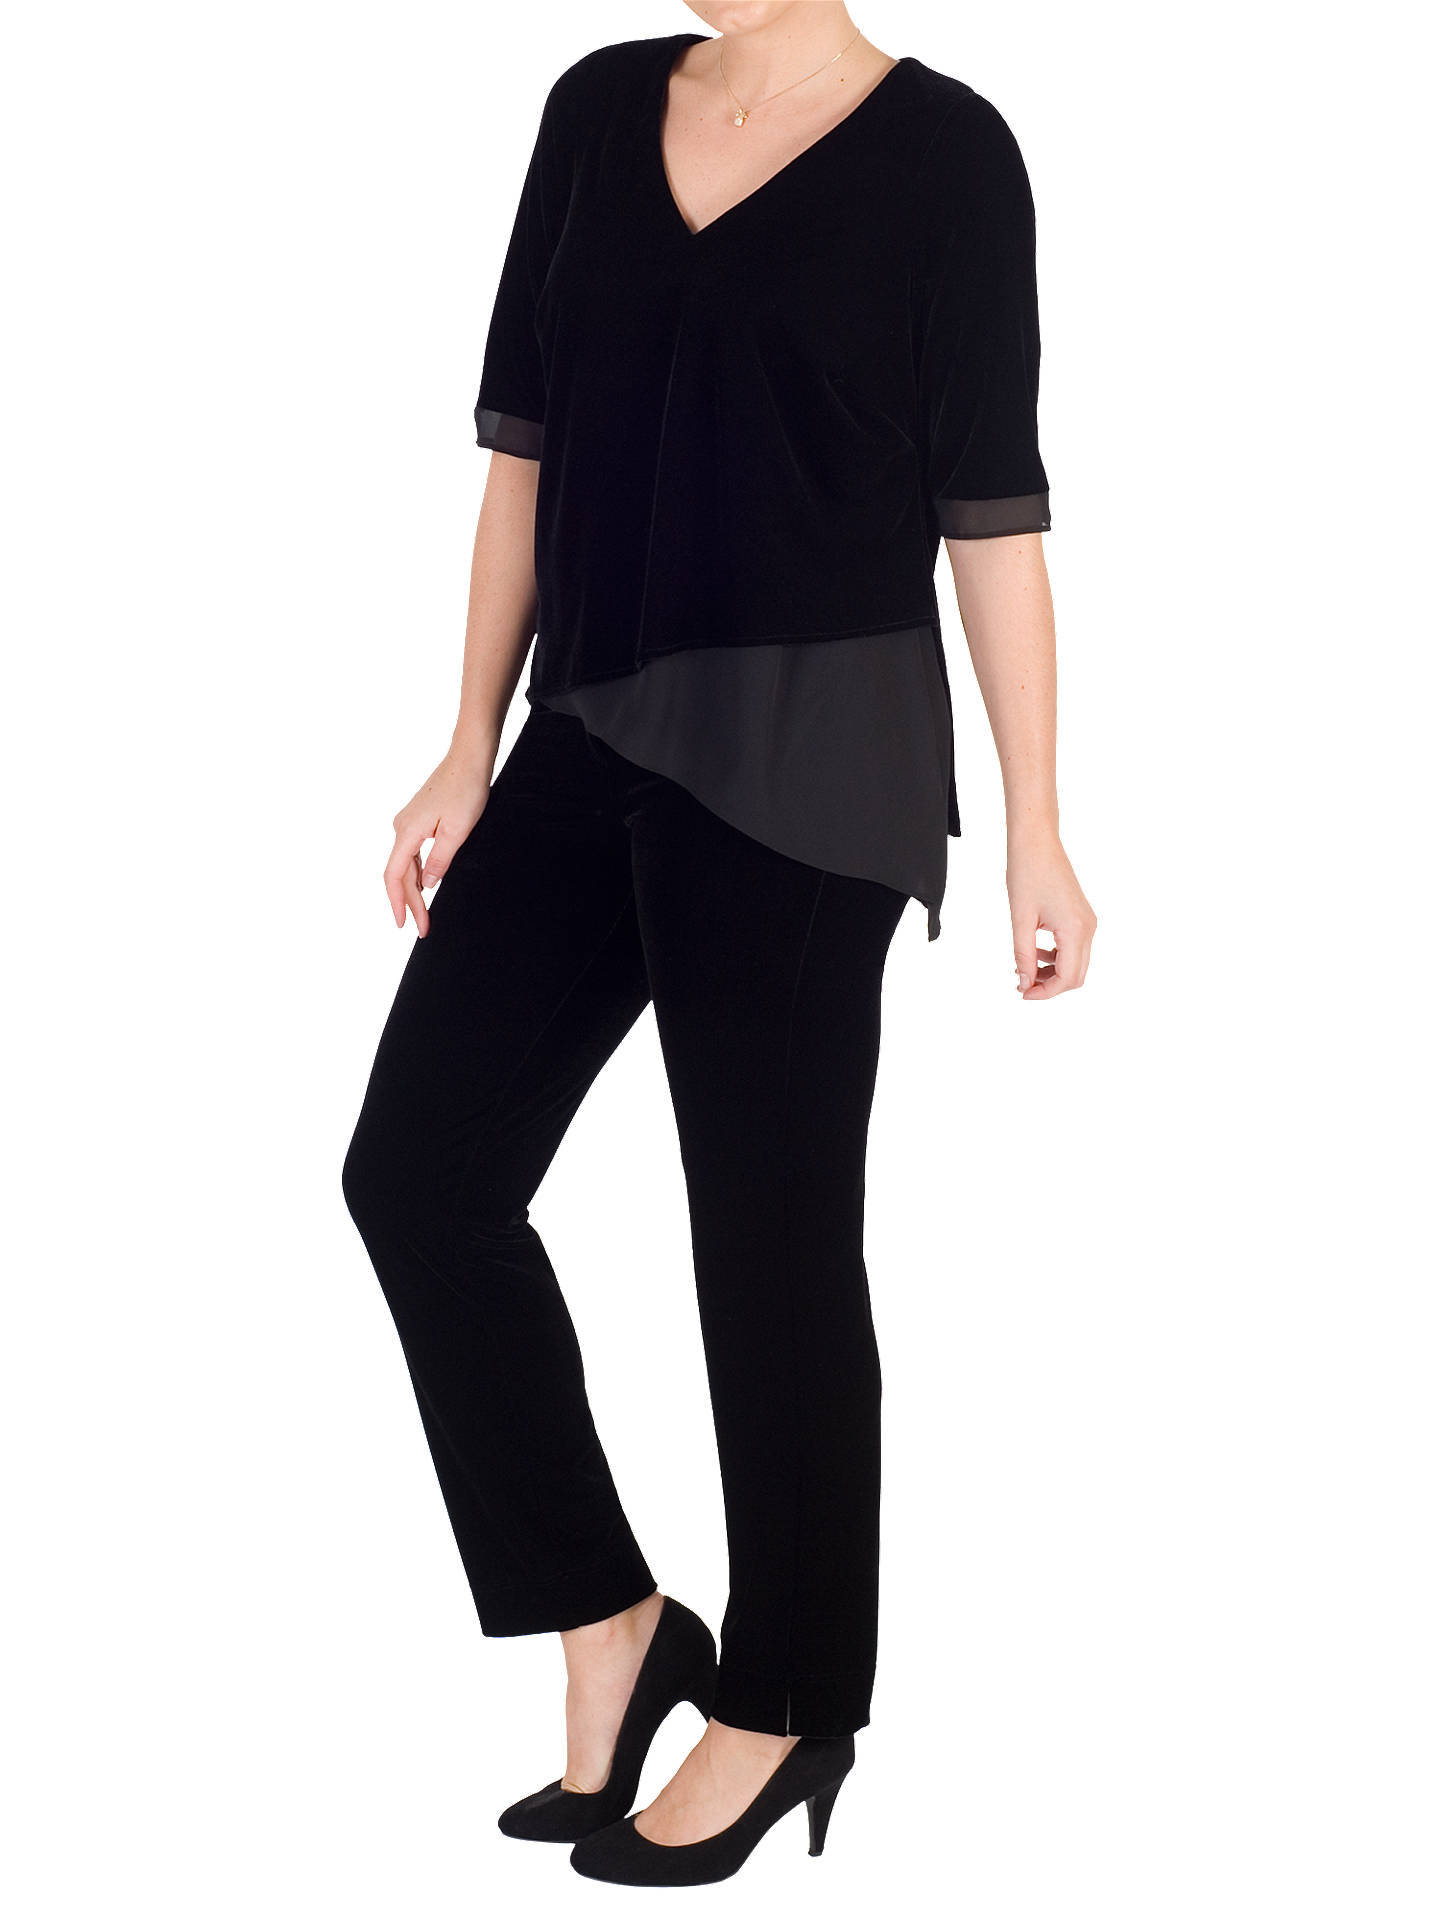 BuyChesca V-Neck Short Sleeve Asymmetric Velvet Top, Black, 14 Online at johnlewis.com